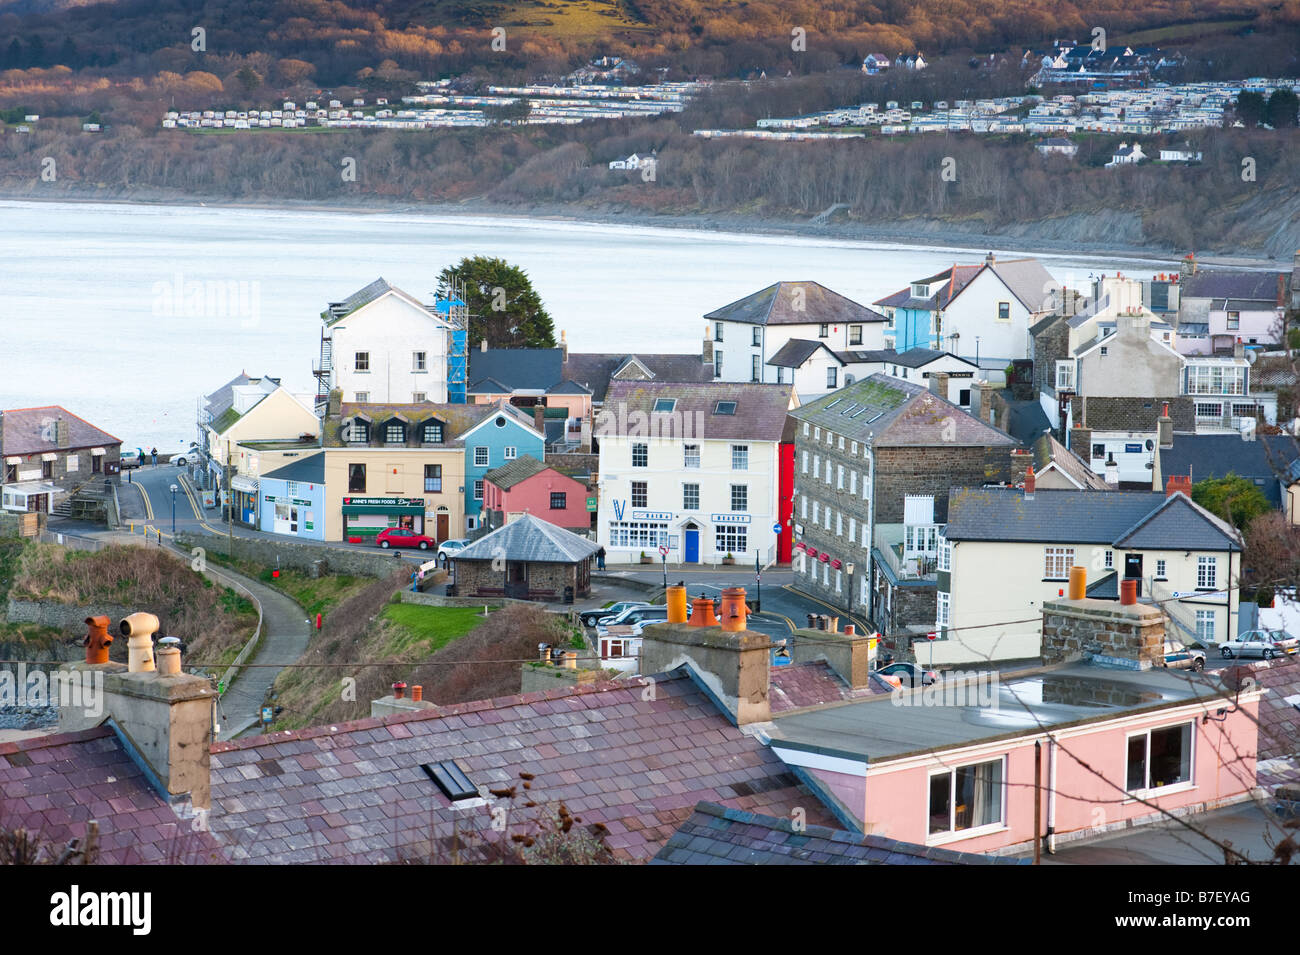 New Quay Ceredigion Wales UK, small village on the Cardigan Bay coast in the winter - Stock Image